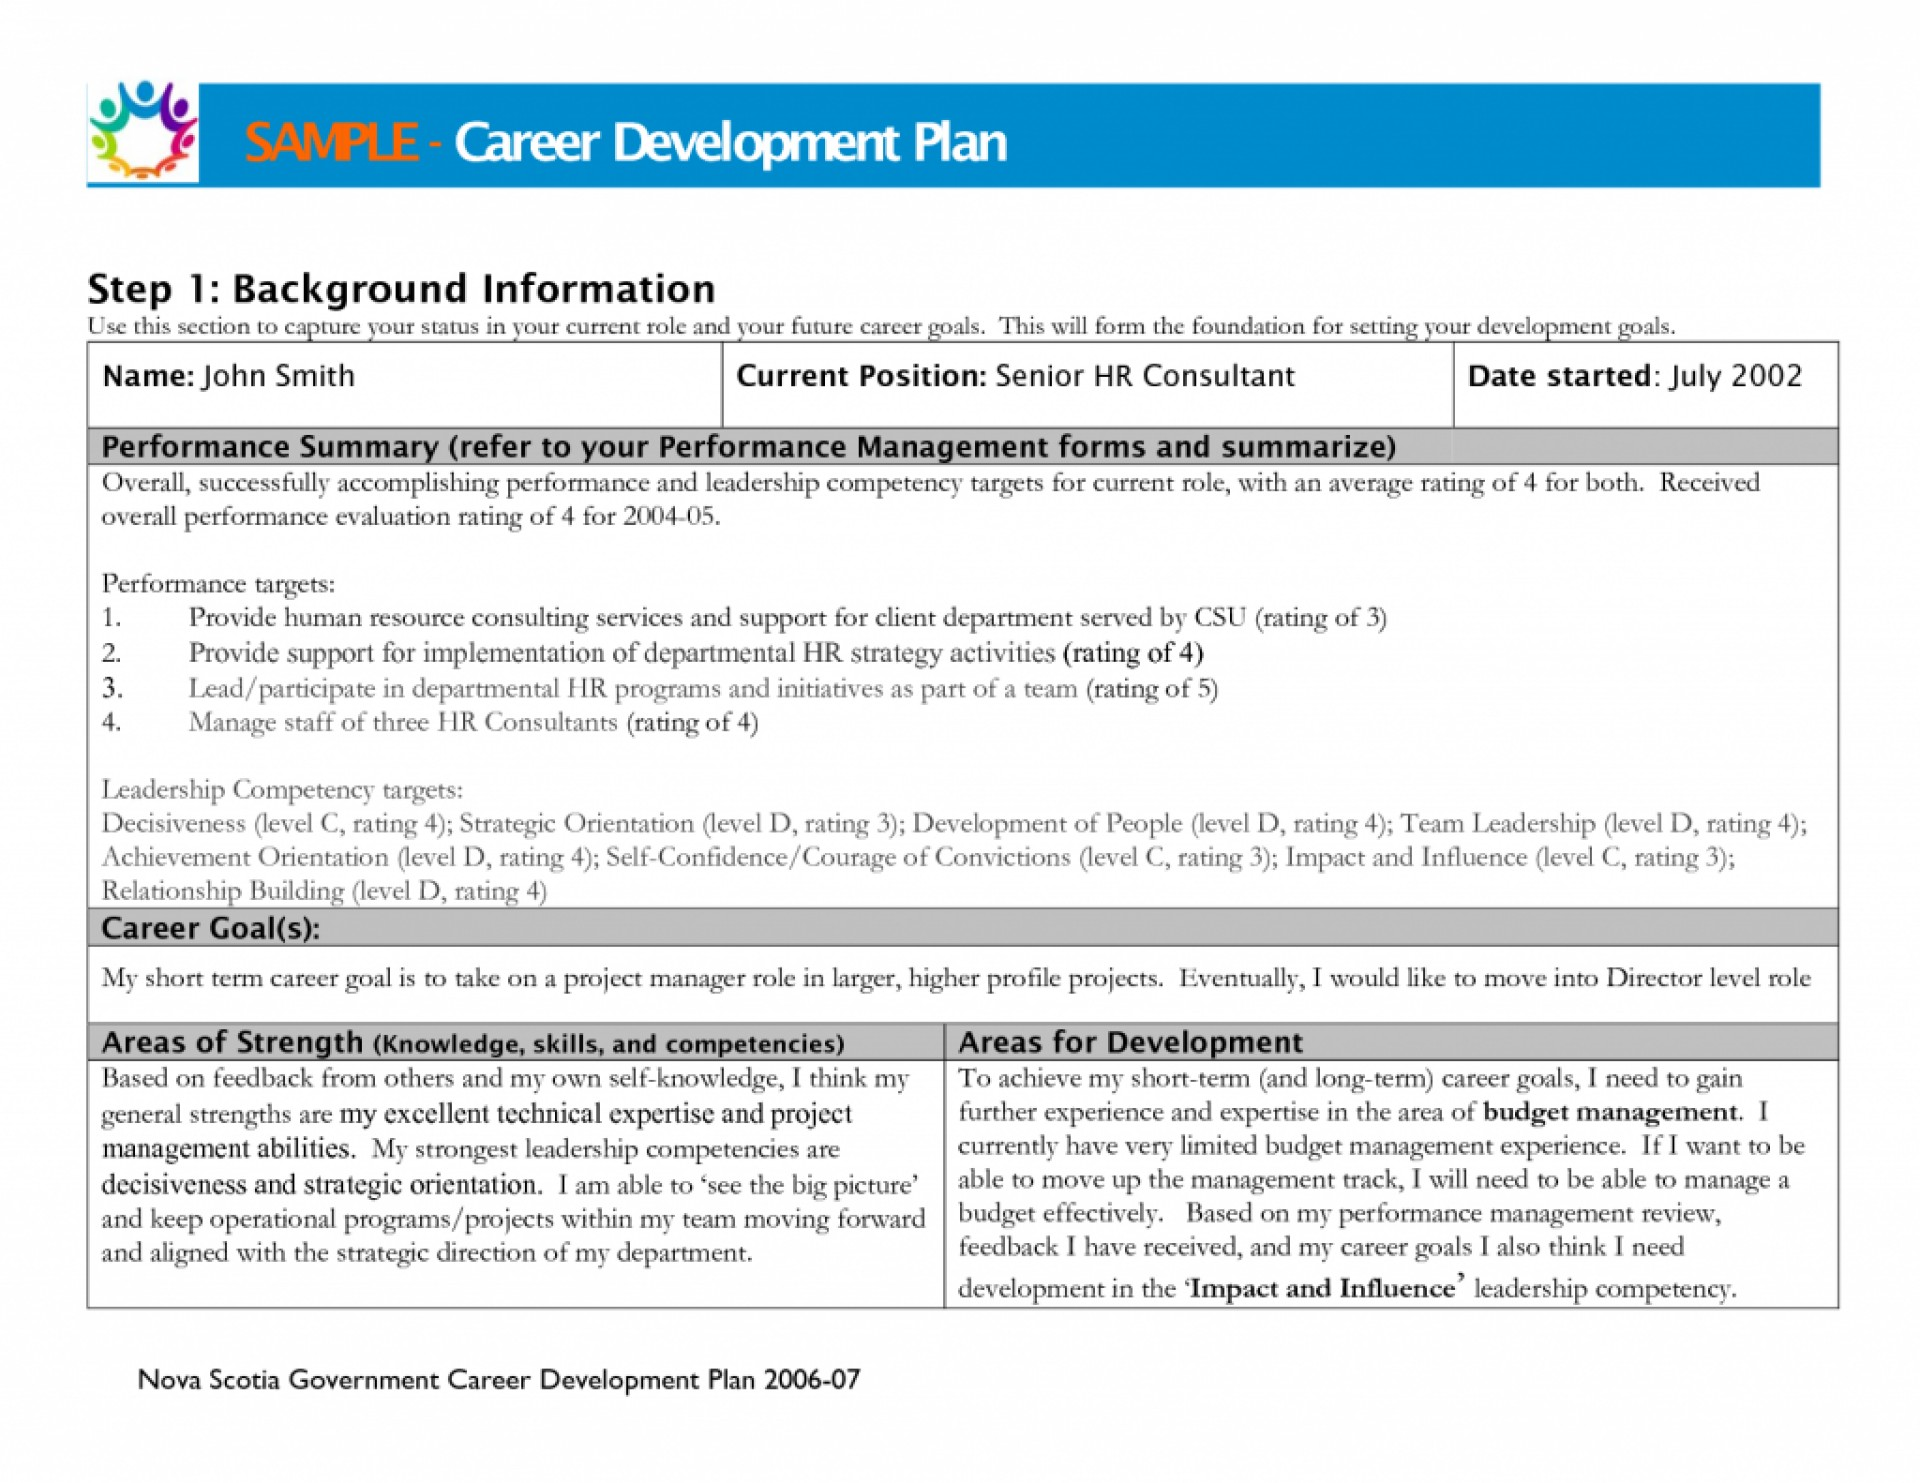 020 Essay Example Professionalent Collection Of Solutions Career Plan Template Sample Awesome Outline Striking Professional